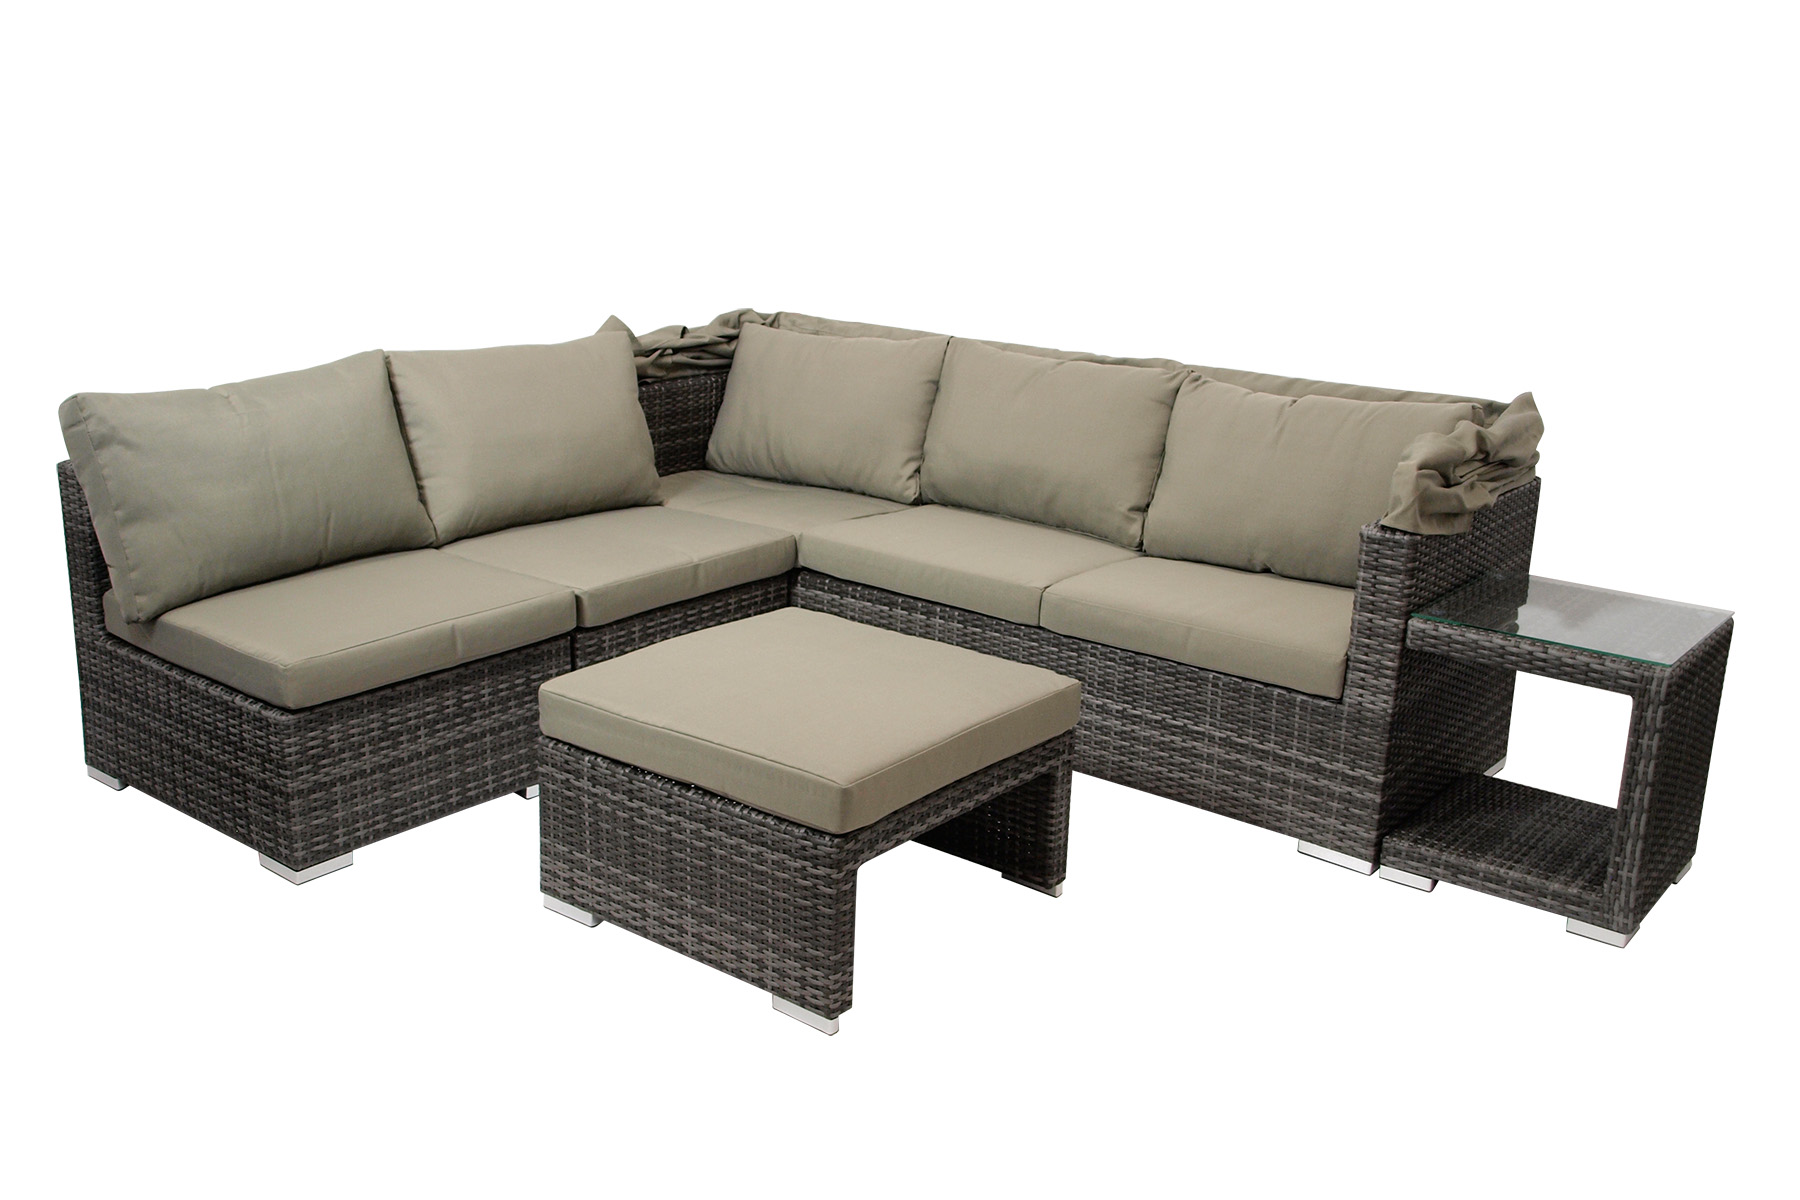 loungeset funktions lounge set sofaset manacor 16 teilig On gartenmobel lounge set